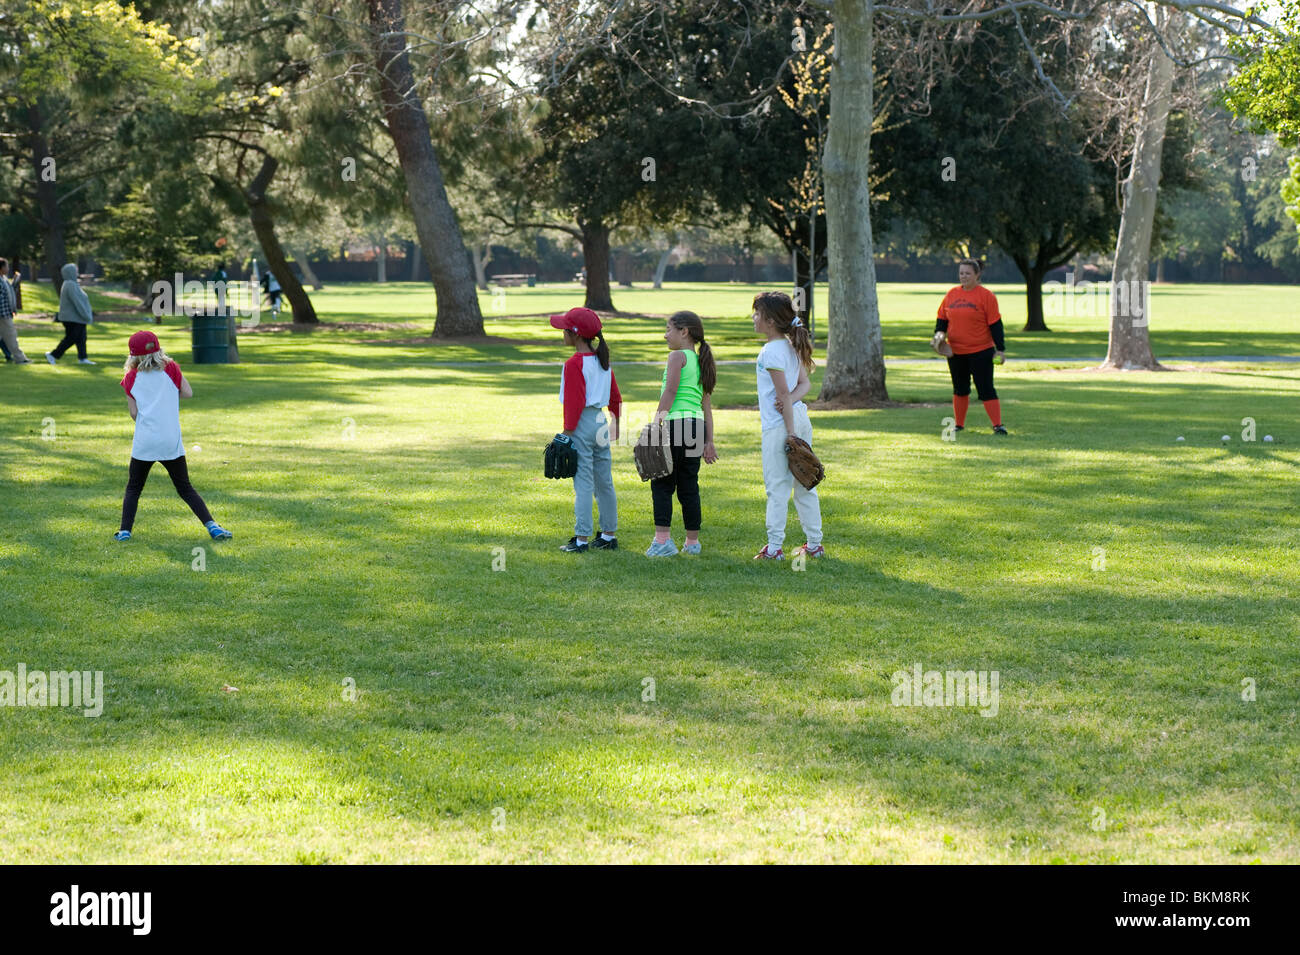 young girls lined up to catch in softball practice - Stock Image